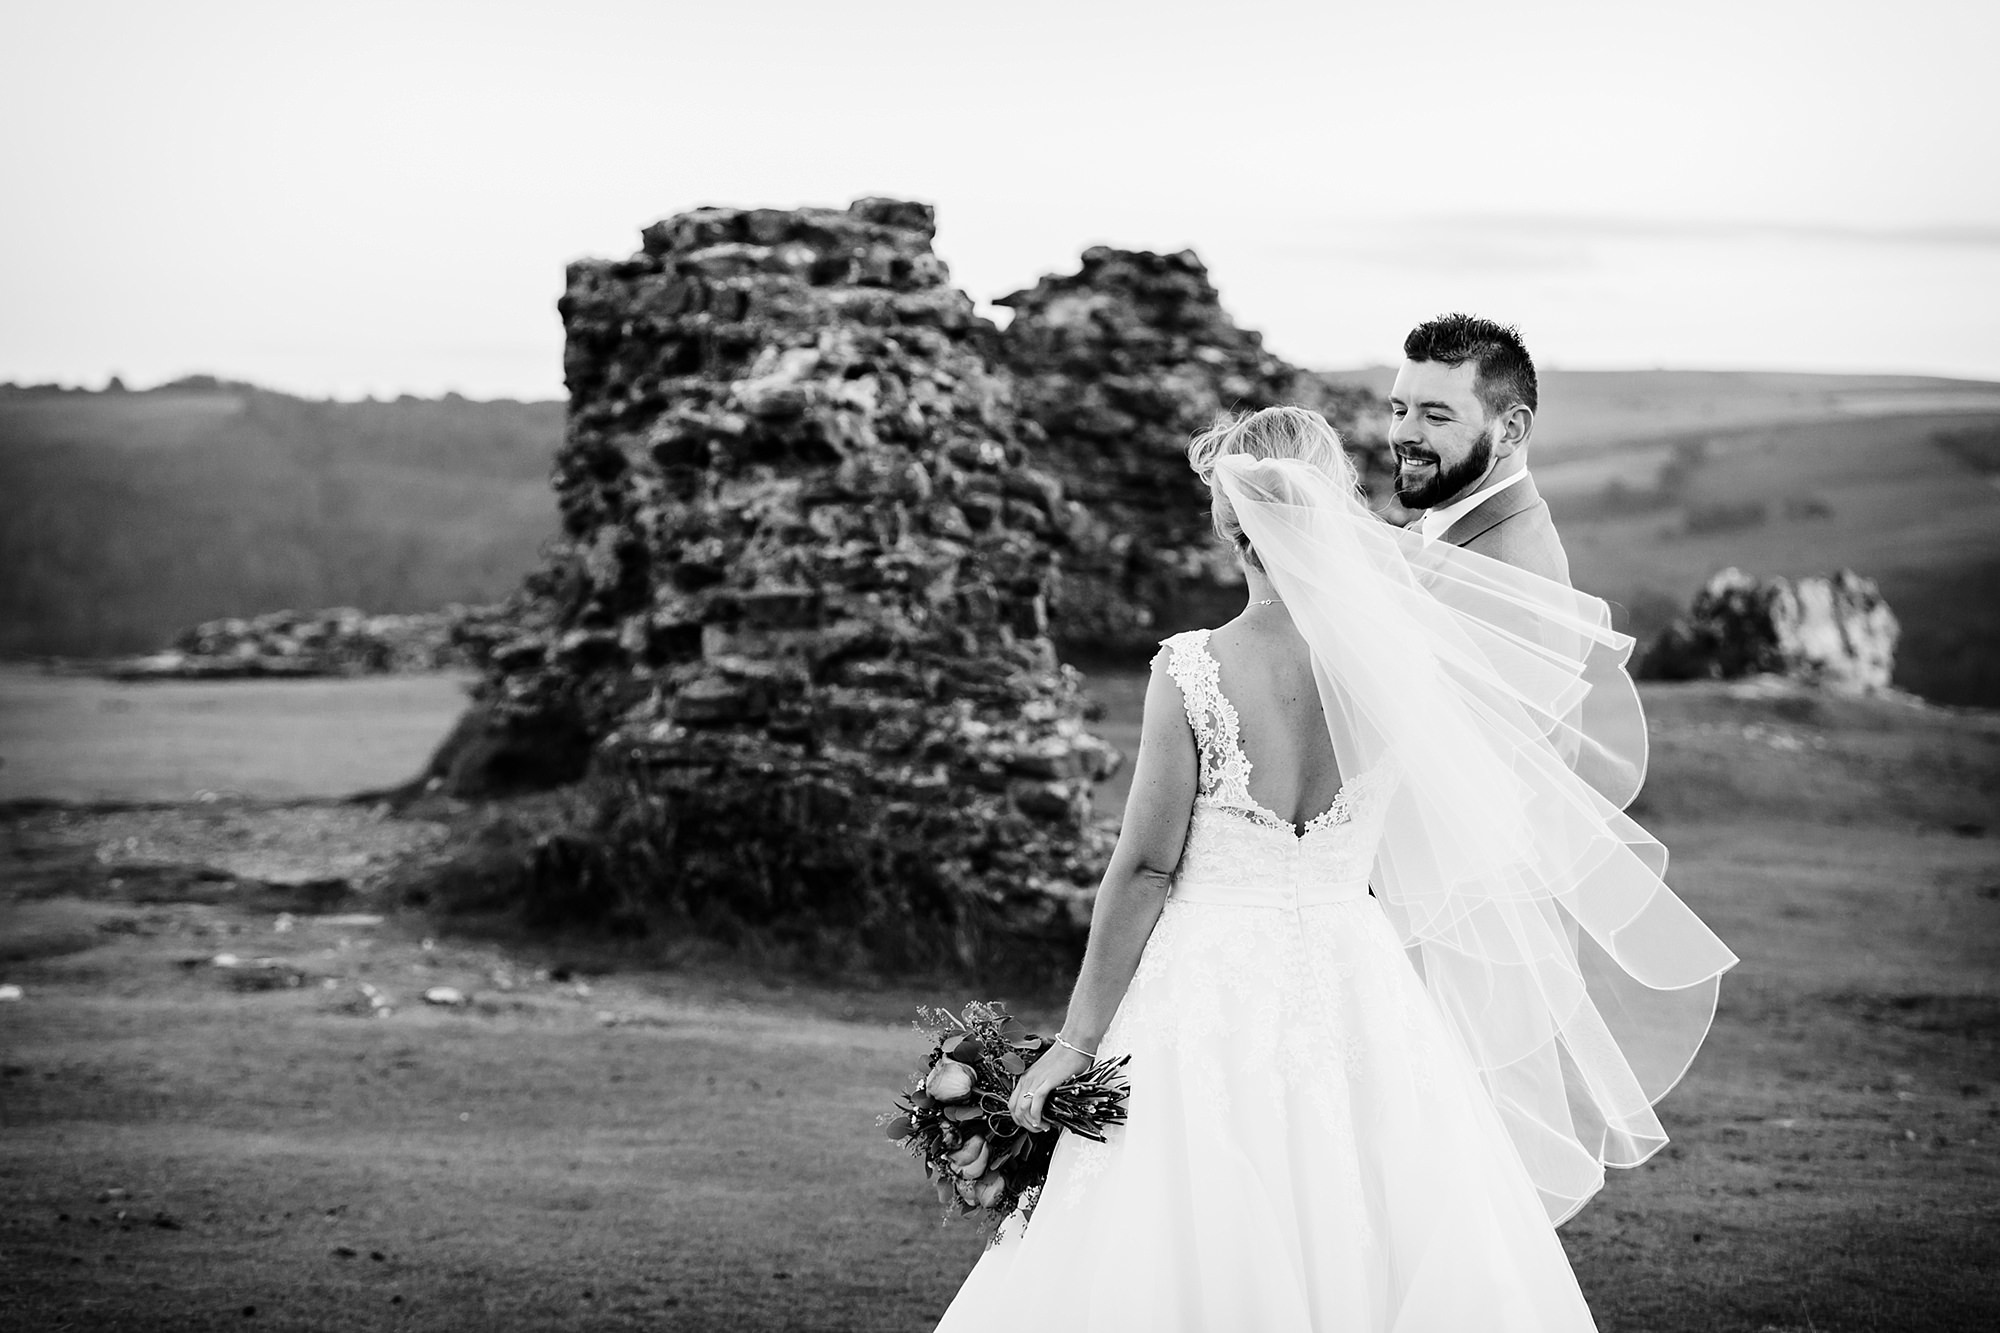 Castell dinas bran wedding photography portrait of groom laughing at his bride